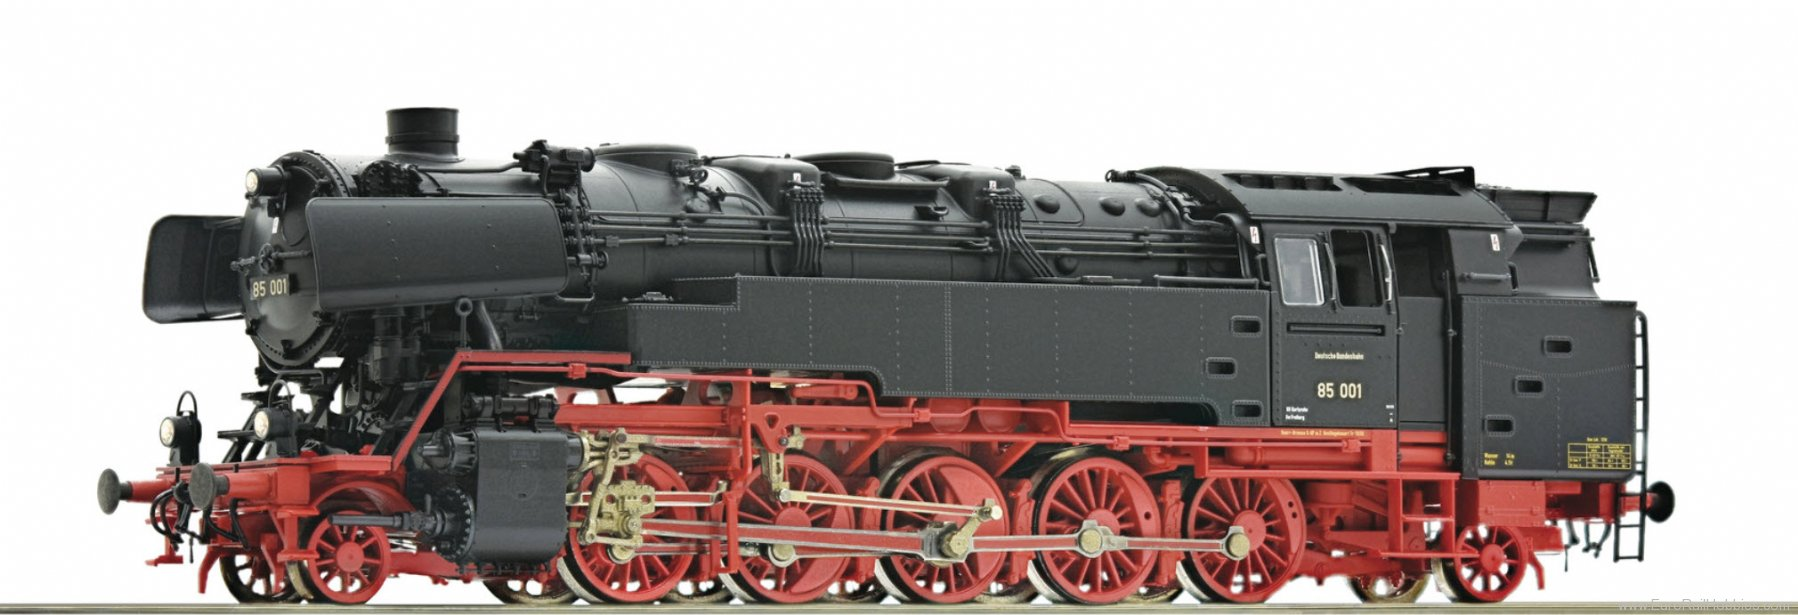 Roco 78263 DB 85 001 Steam locomotive (Marklin AC Digita